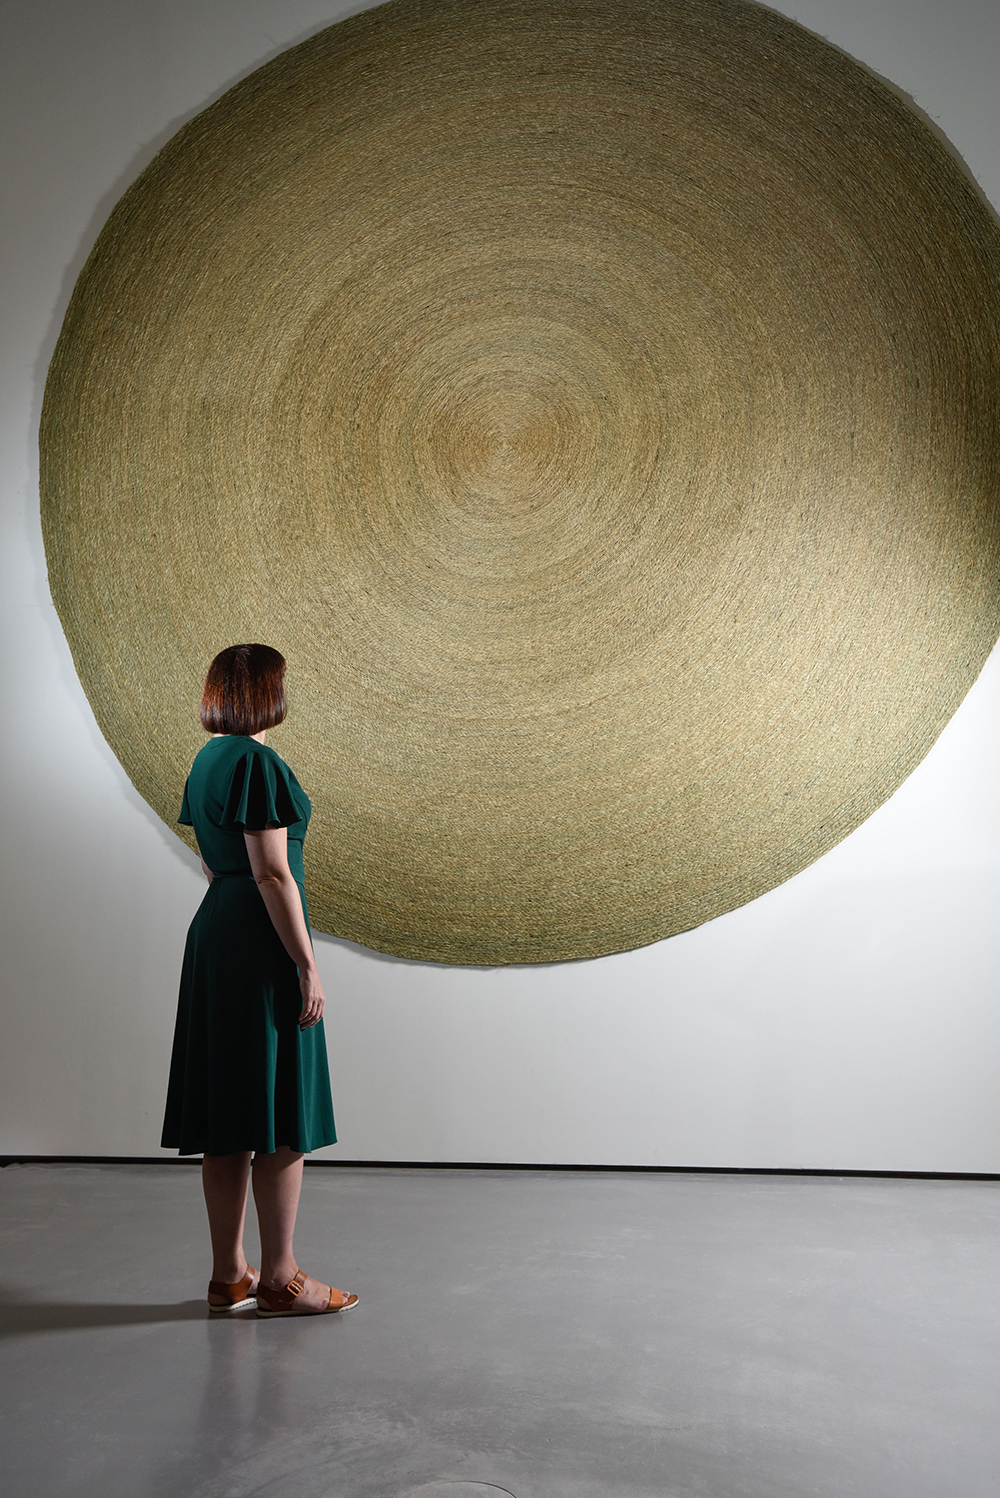 One of the first visitors to Anthea Hamilton Reimagines Kettle's Yard views Handwoven grass mats, 2016 by Anthea Hamilton. Exhibition opens to the public on Thursday 15 September at The Hepworth Wakefield. Photo © Darren O'Brien/Guzelian. Courtesy The Hepworth Wakefield.